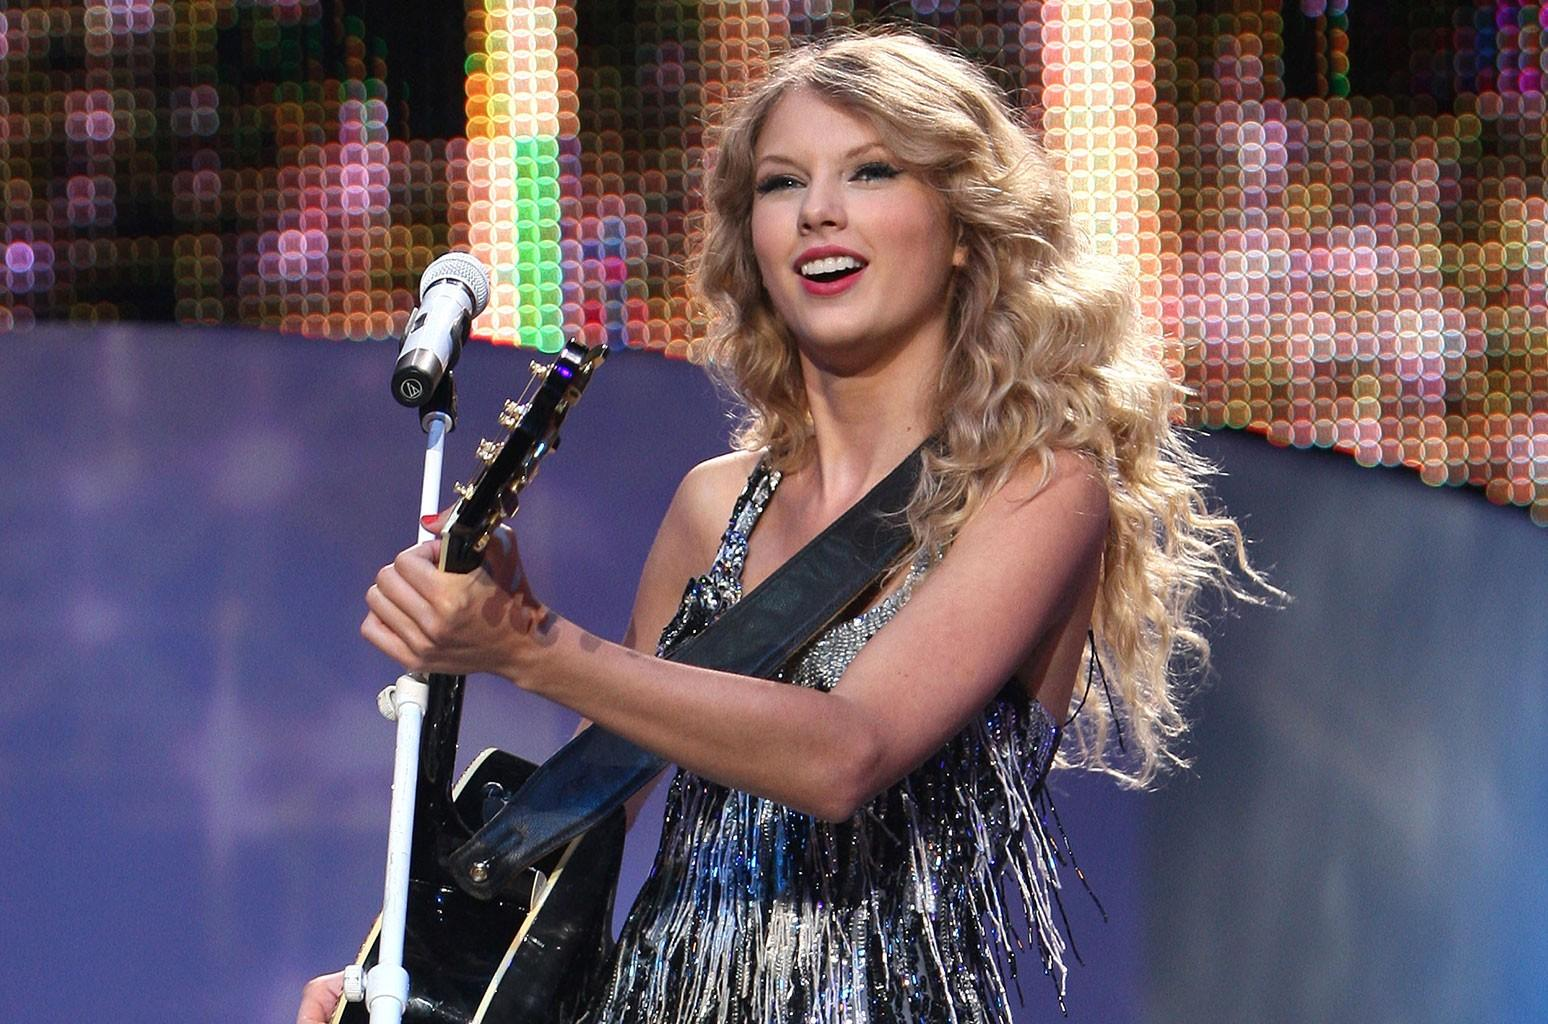 Taylor Swift Fearless Tour 2009